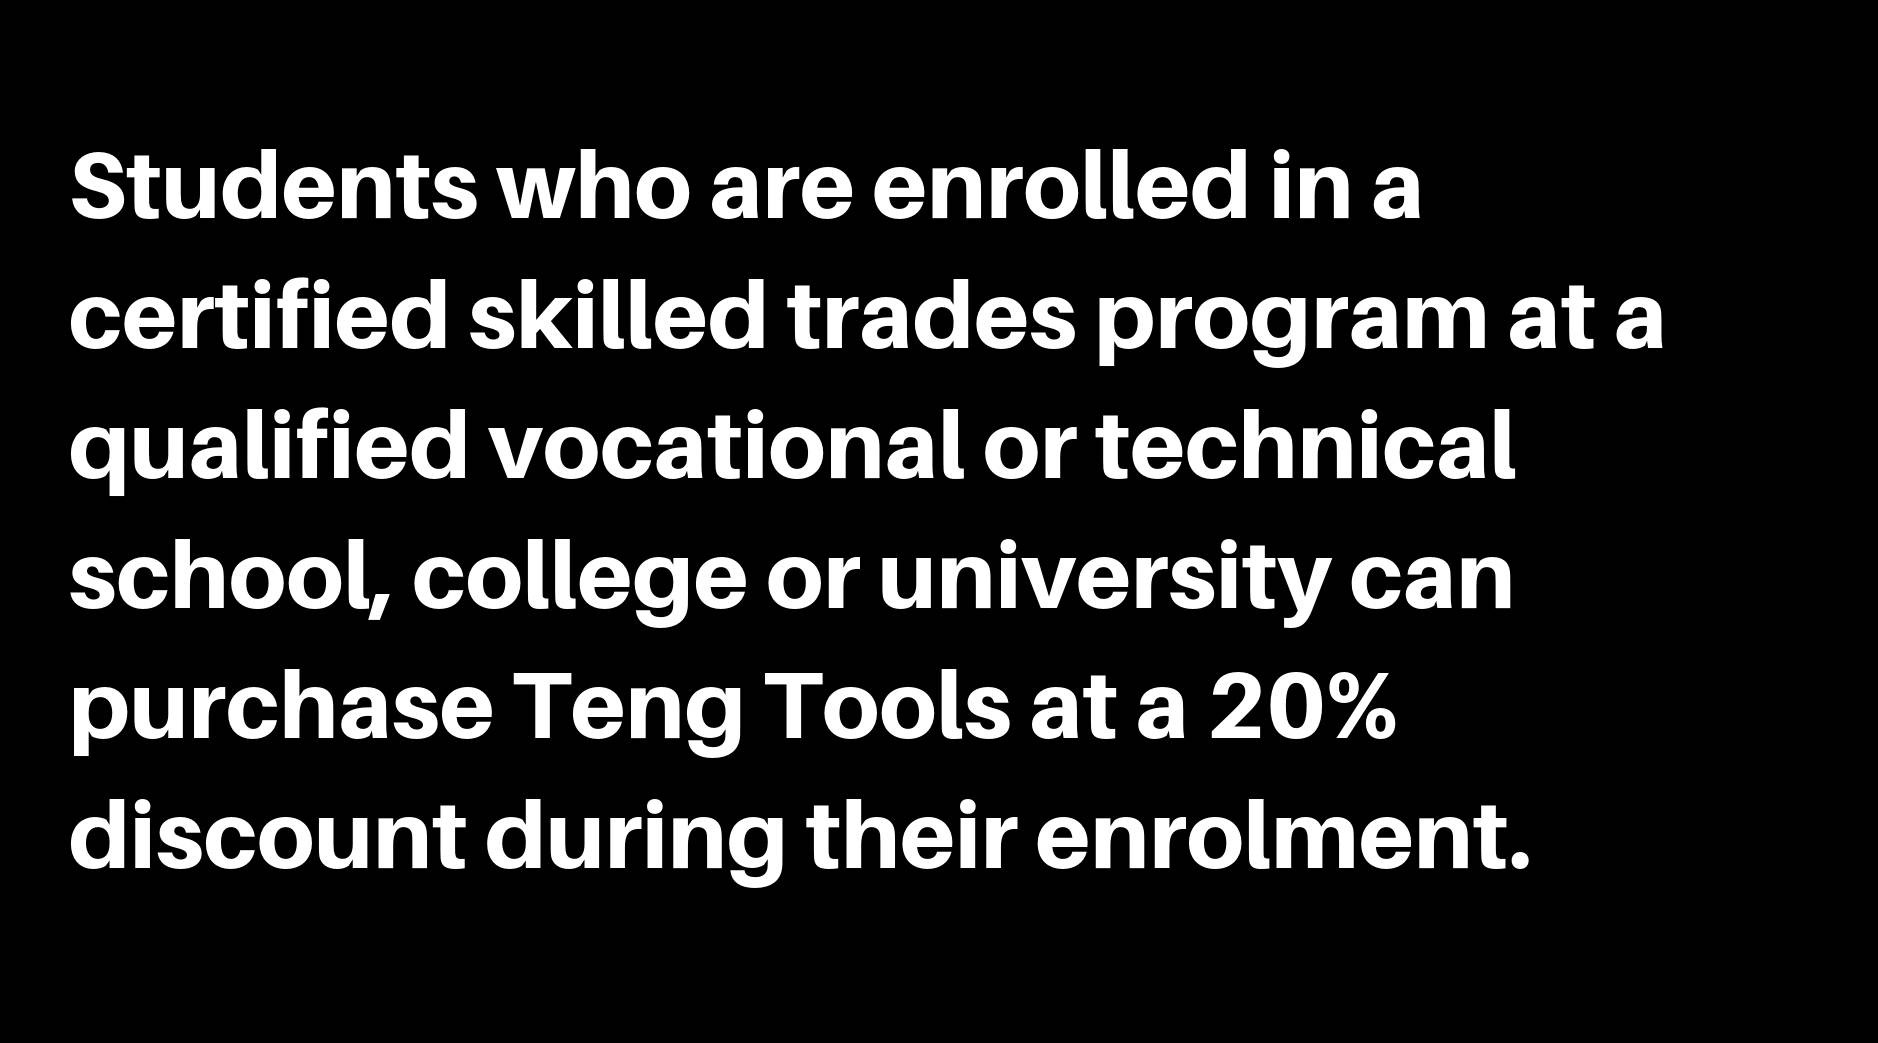 Students who are enrolled in a certified skilled trades program at a qualified covational or technical school, college or university can purchase Teng Tools at a 20% discount during their enrolment.